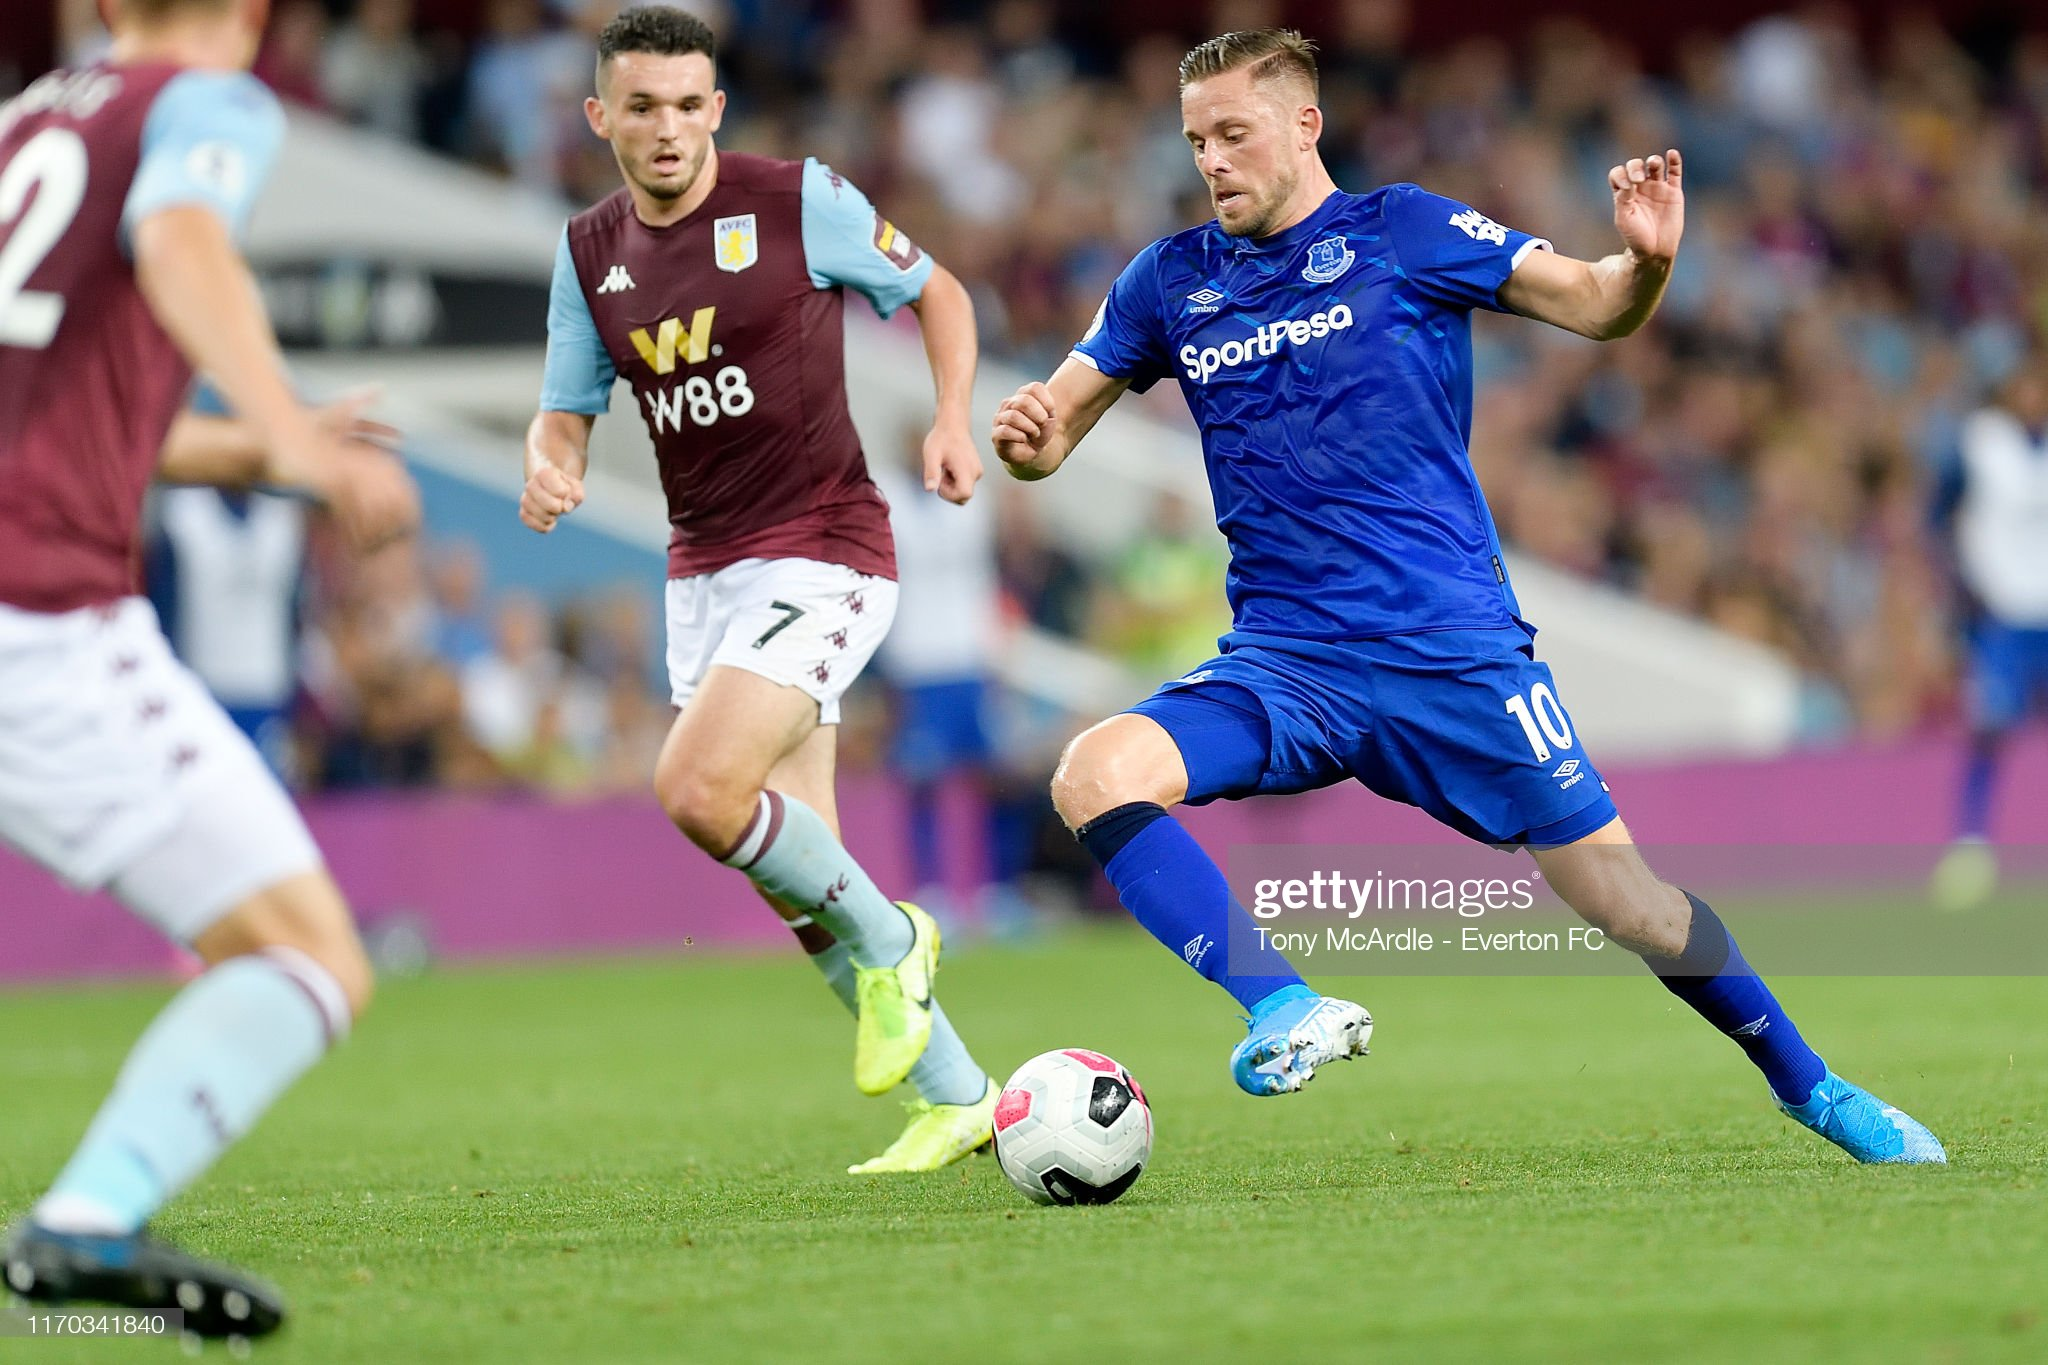 Everton vs Aston Villa Preview, prediction and odds